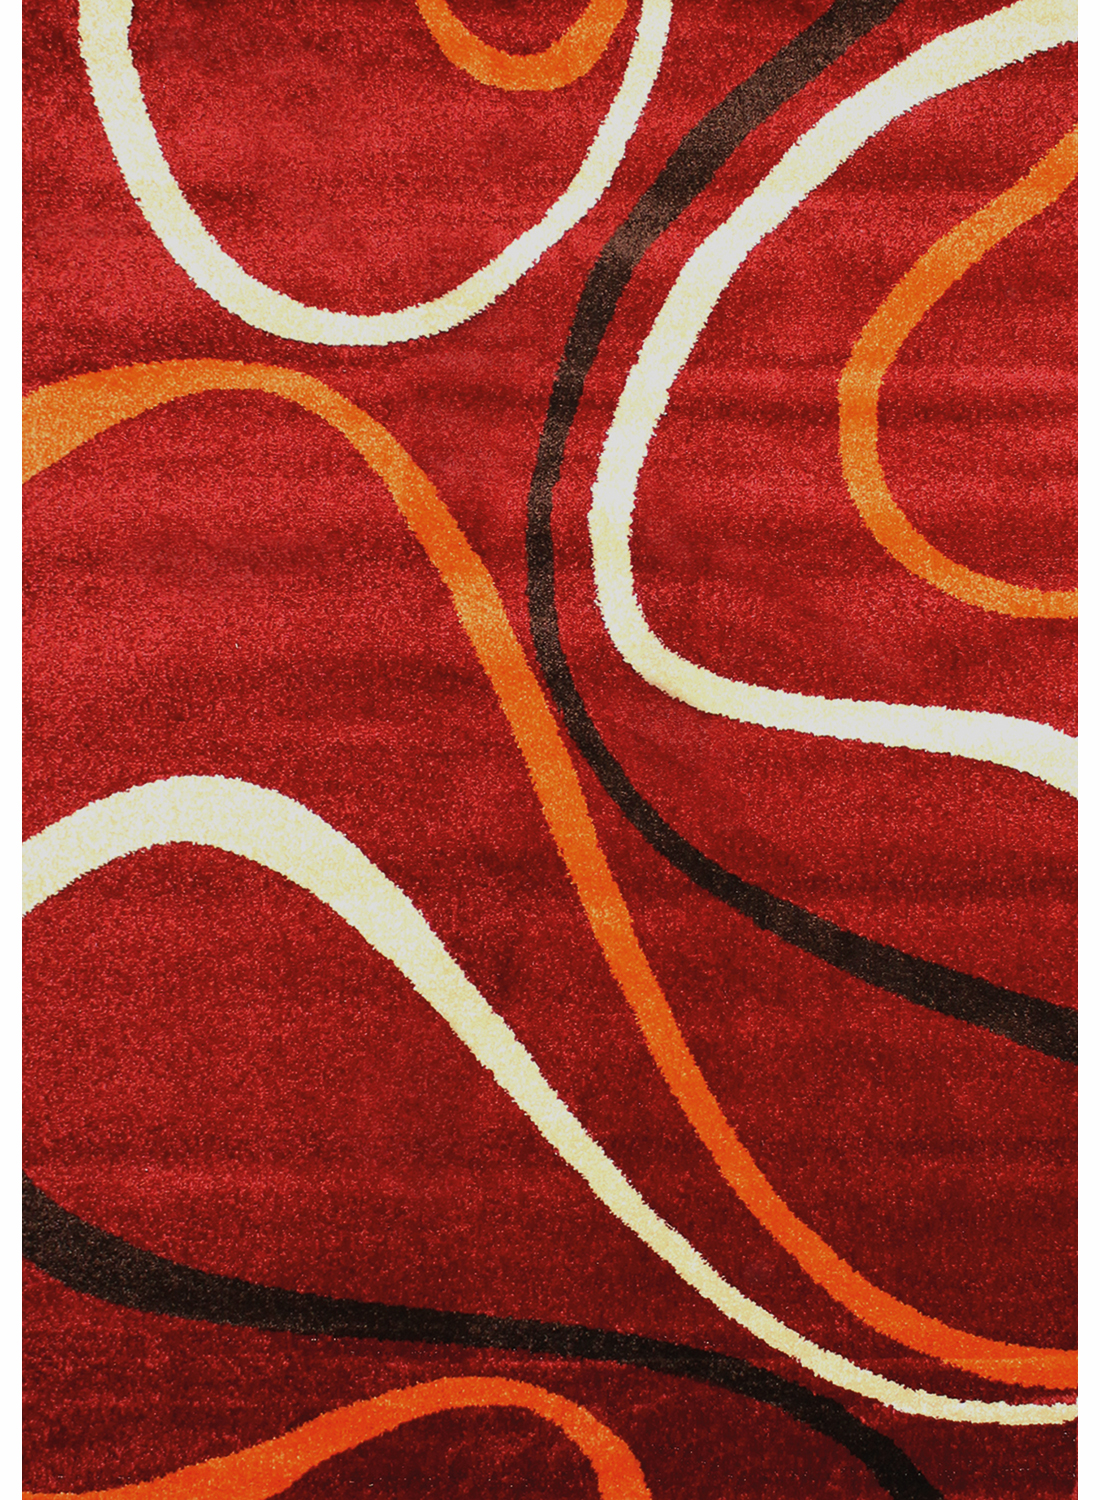 les tapis twist 4 rouge pour le salon - Tapis De Salon Rouge